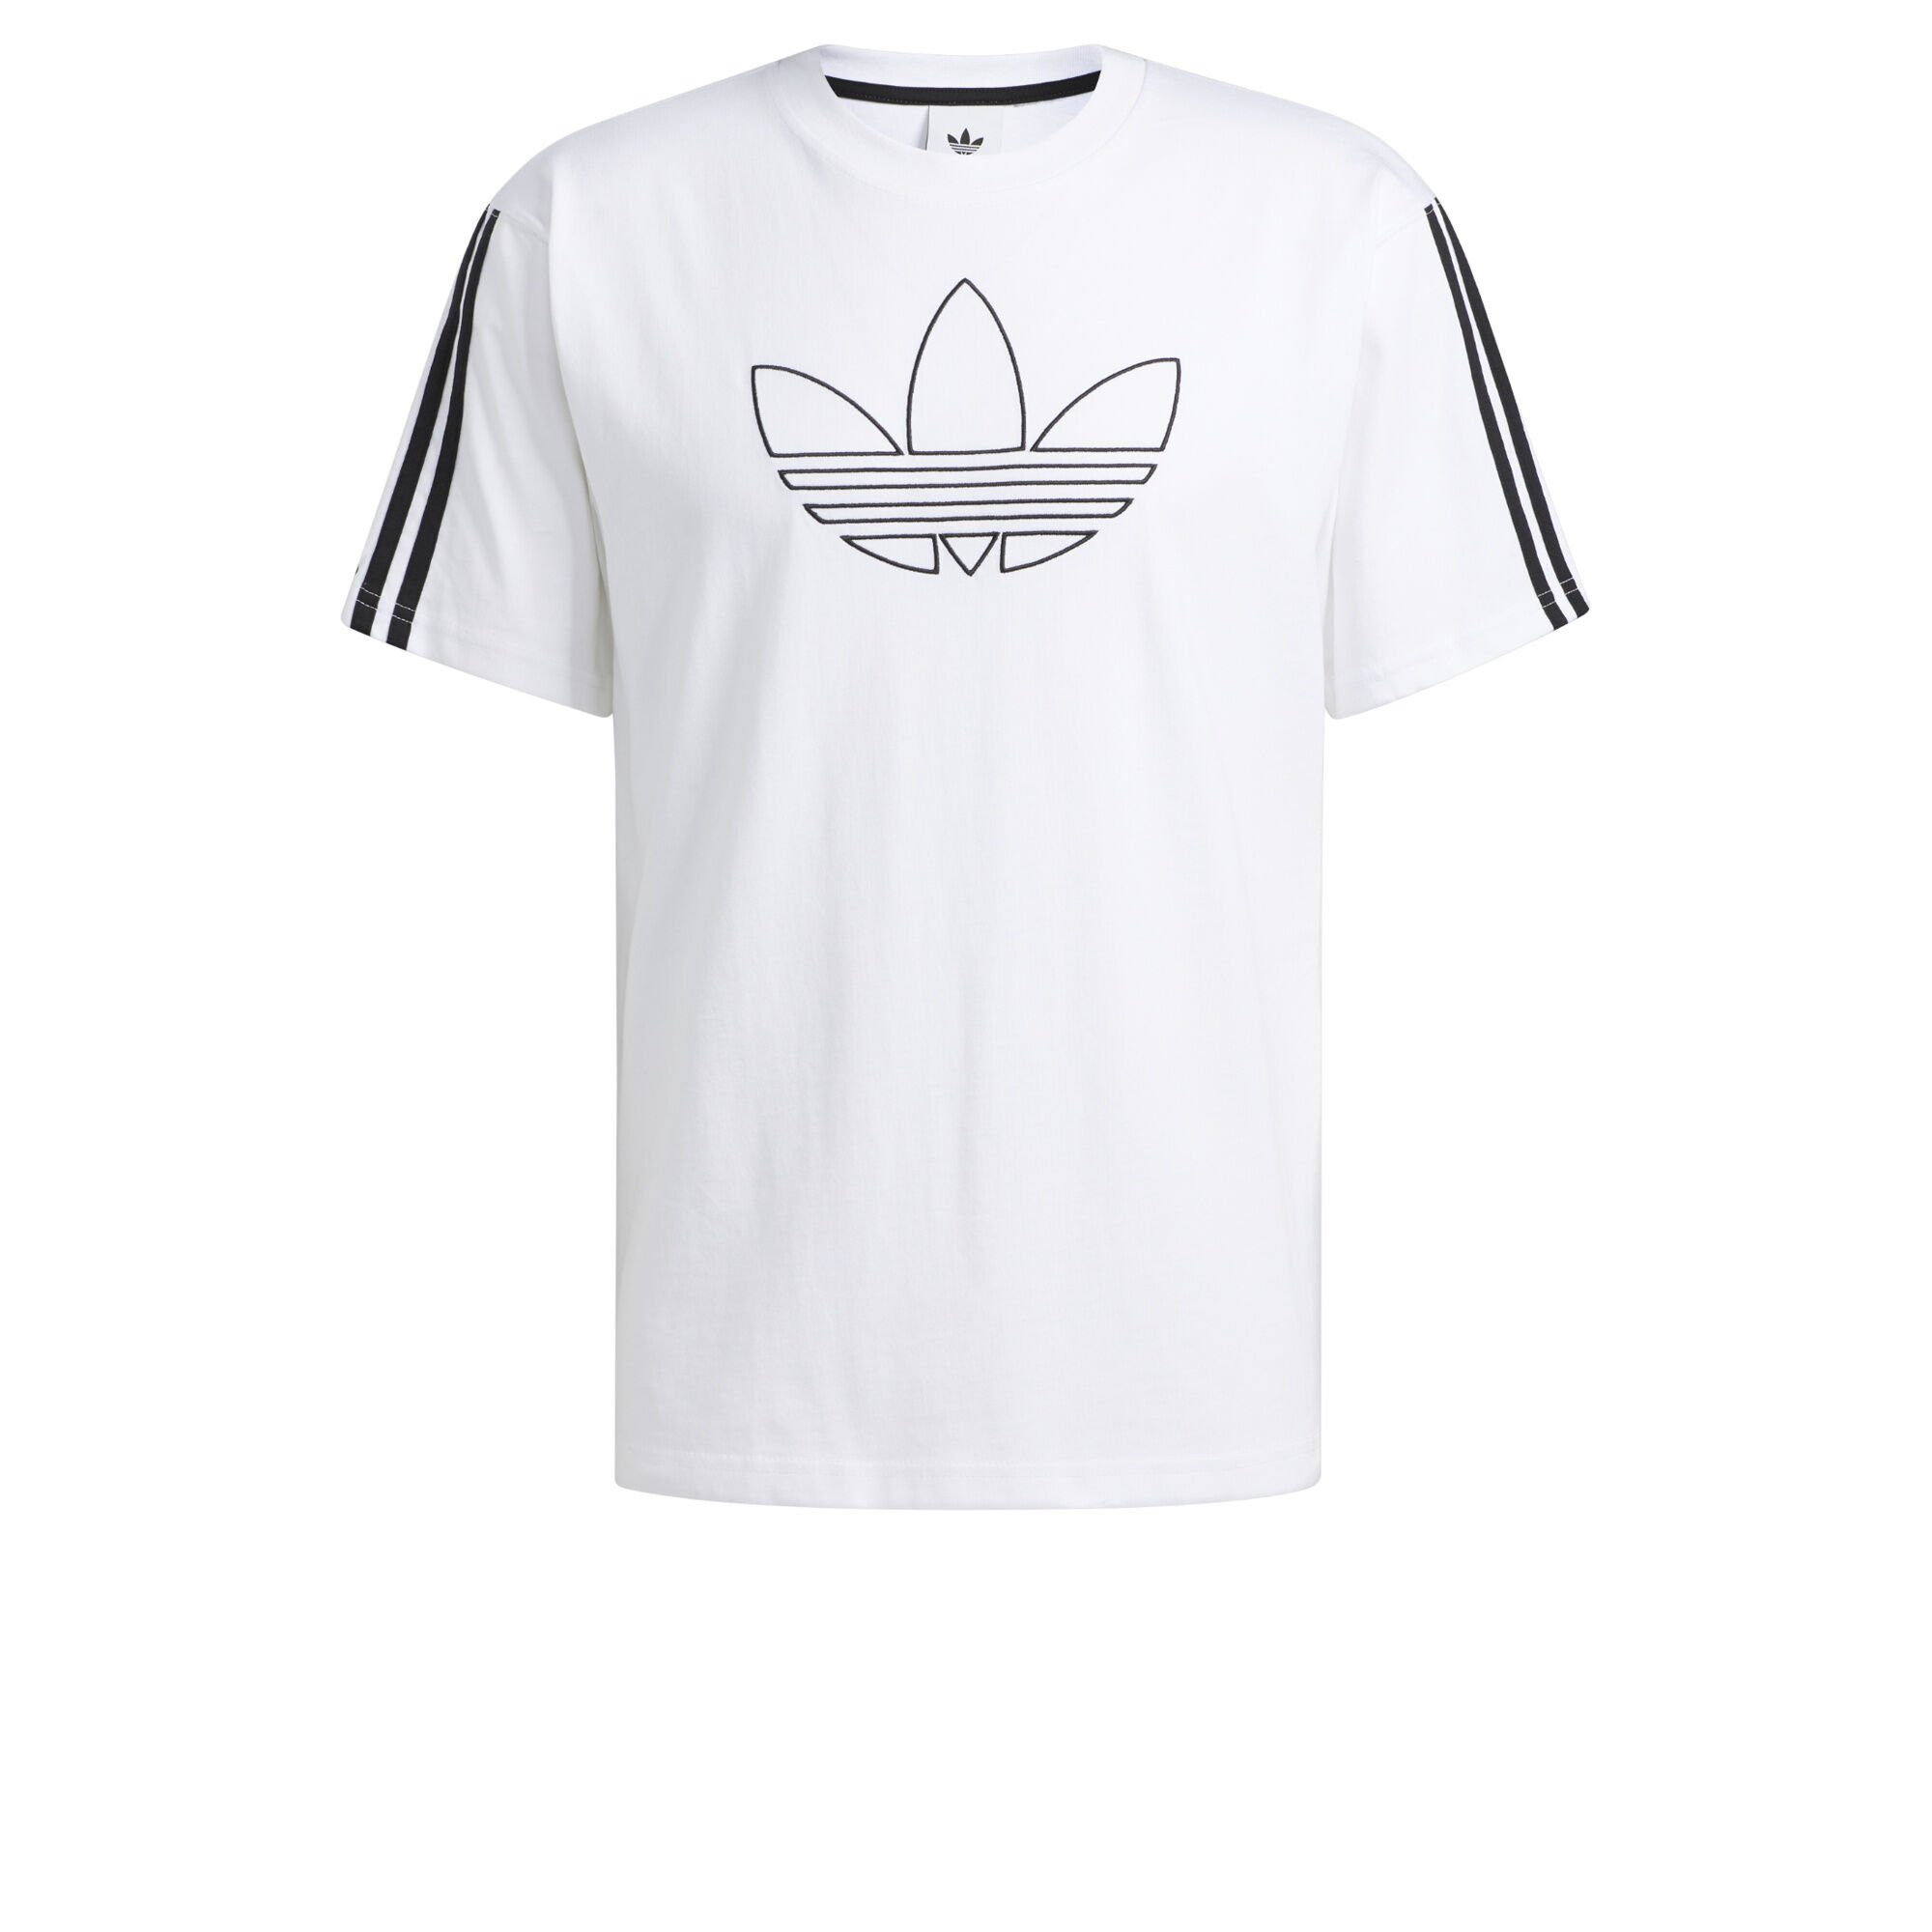 adidas Originals White Outline Trefoil T Shirt